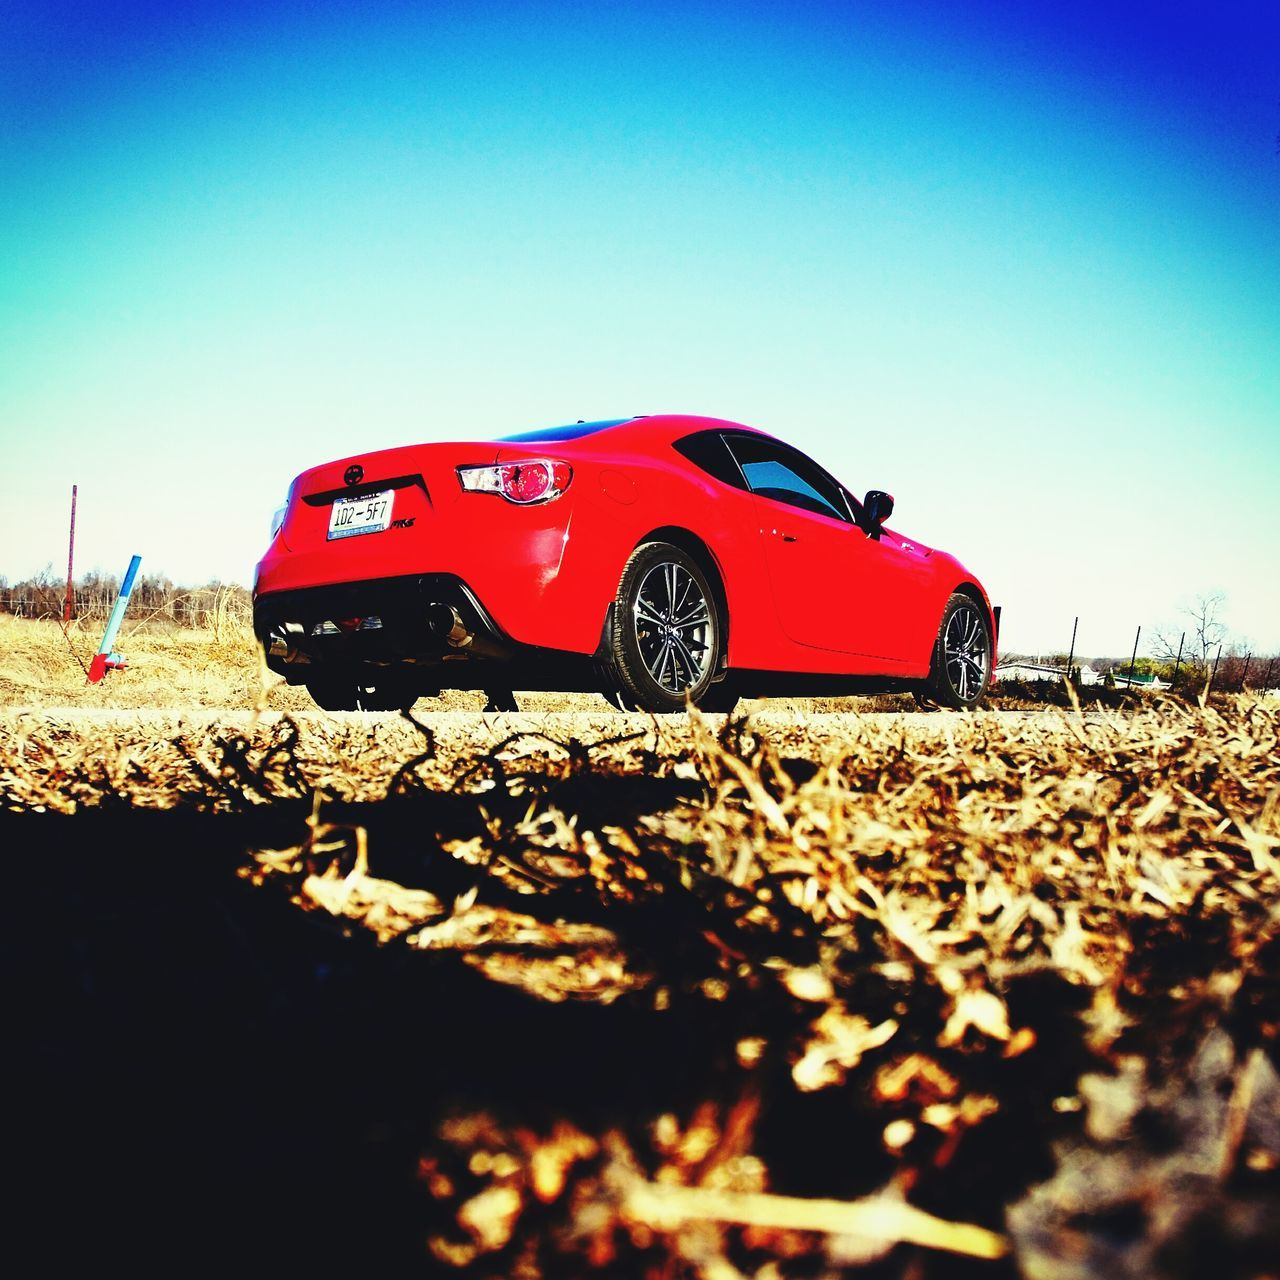 Car Red Sunlight No People Motorsport Outdoors Day Sky Transportation FRS Scion  Scion Fr-S Vehicle Breakdown